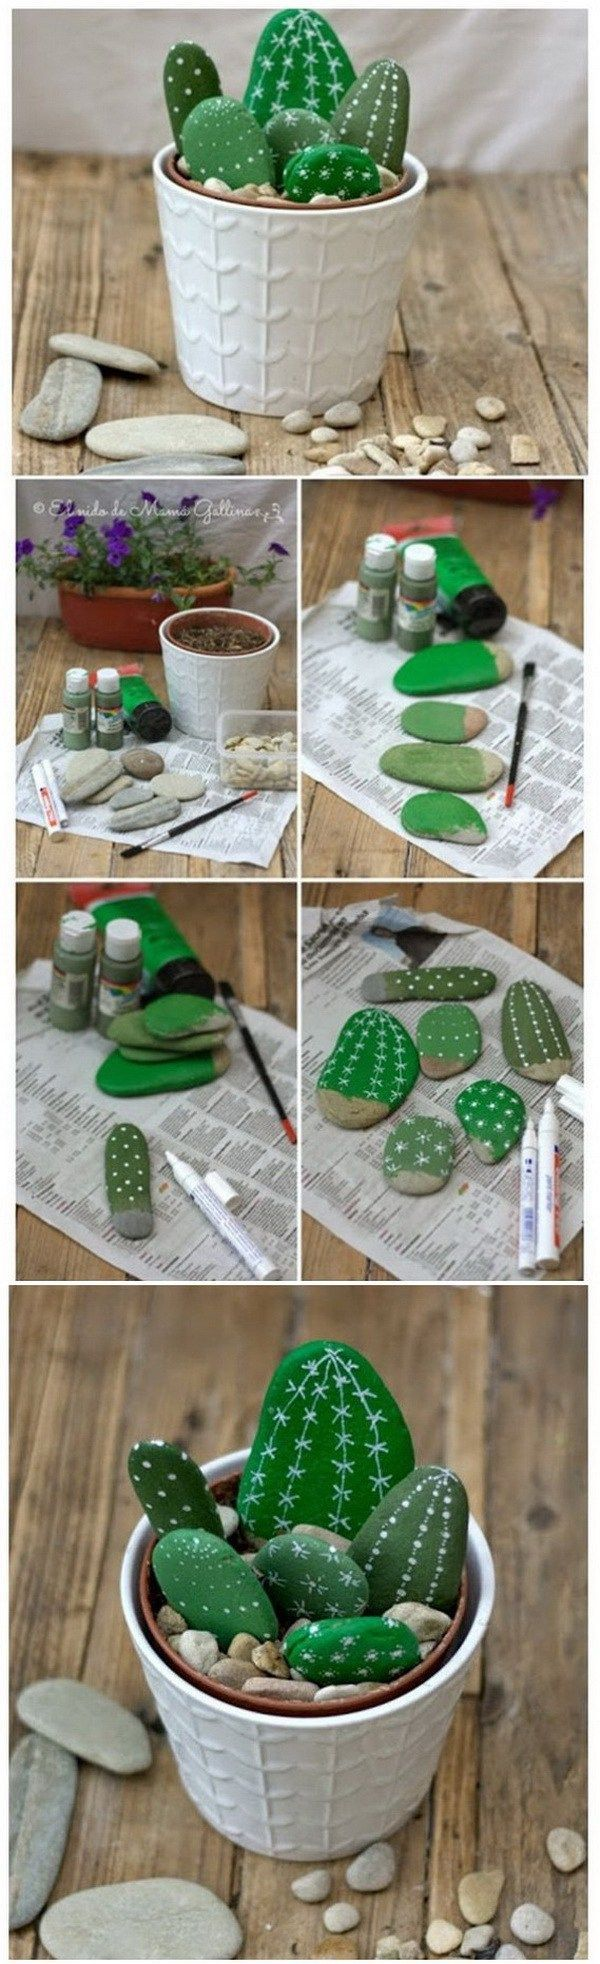 best 25 homemade centerpieces ideas on pinterest homemade try these best diy projects for your home decoration homemade